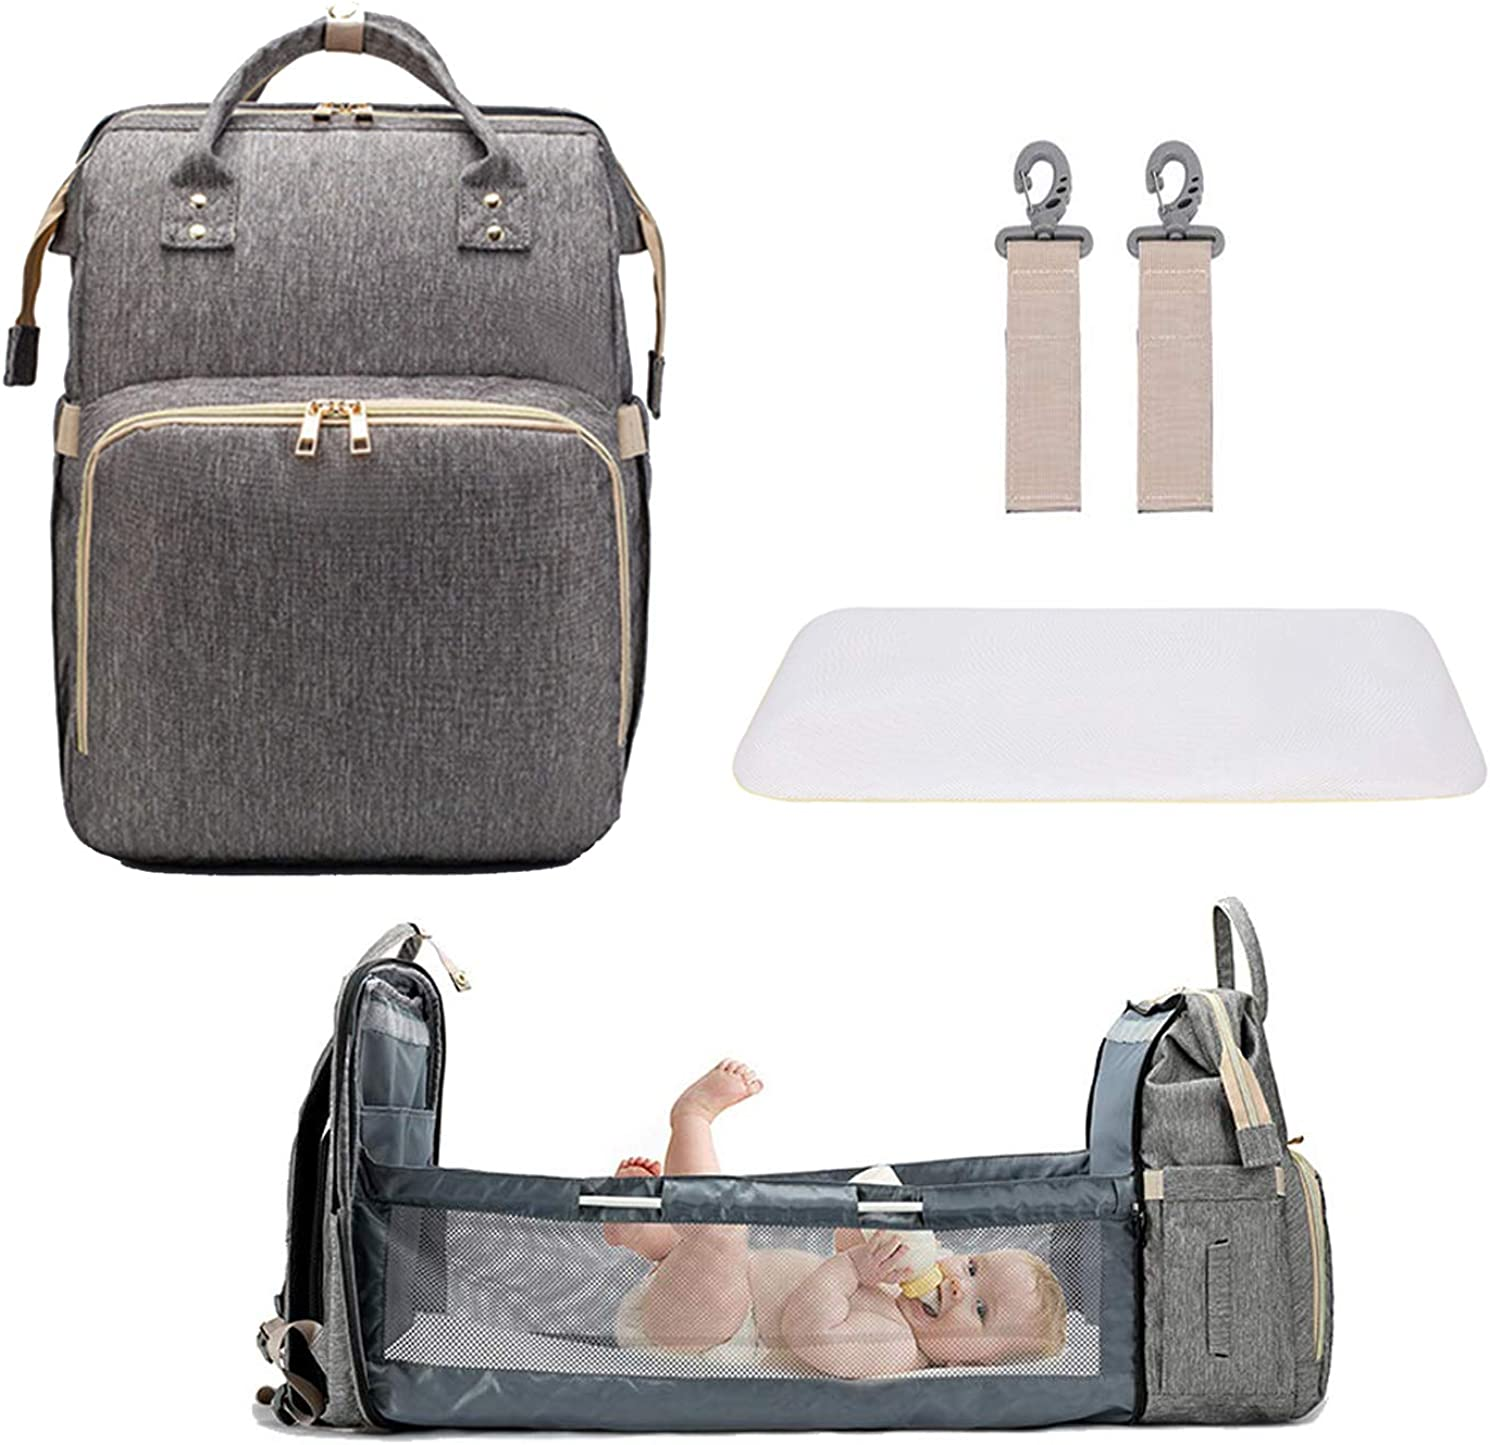 3 in1 Diaper Bag Bed Foldable Travel Backpack with Changing Station